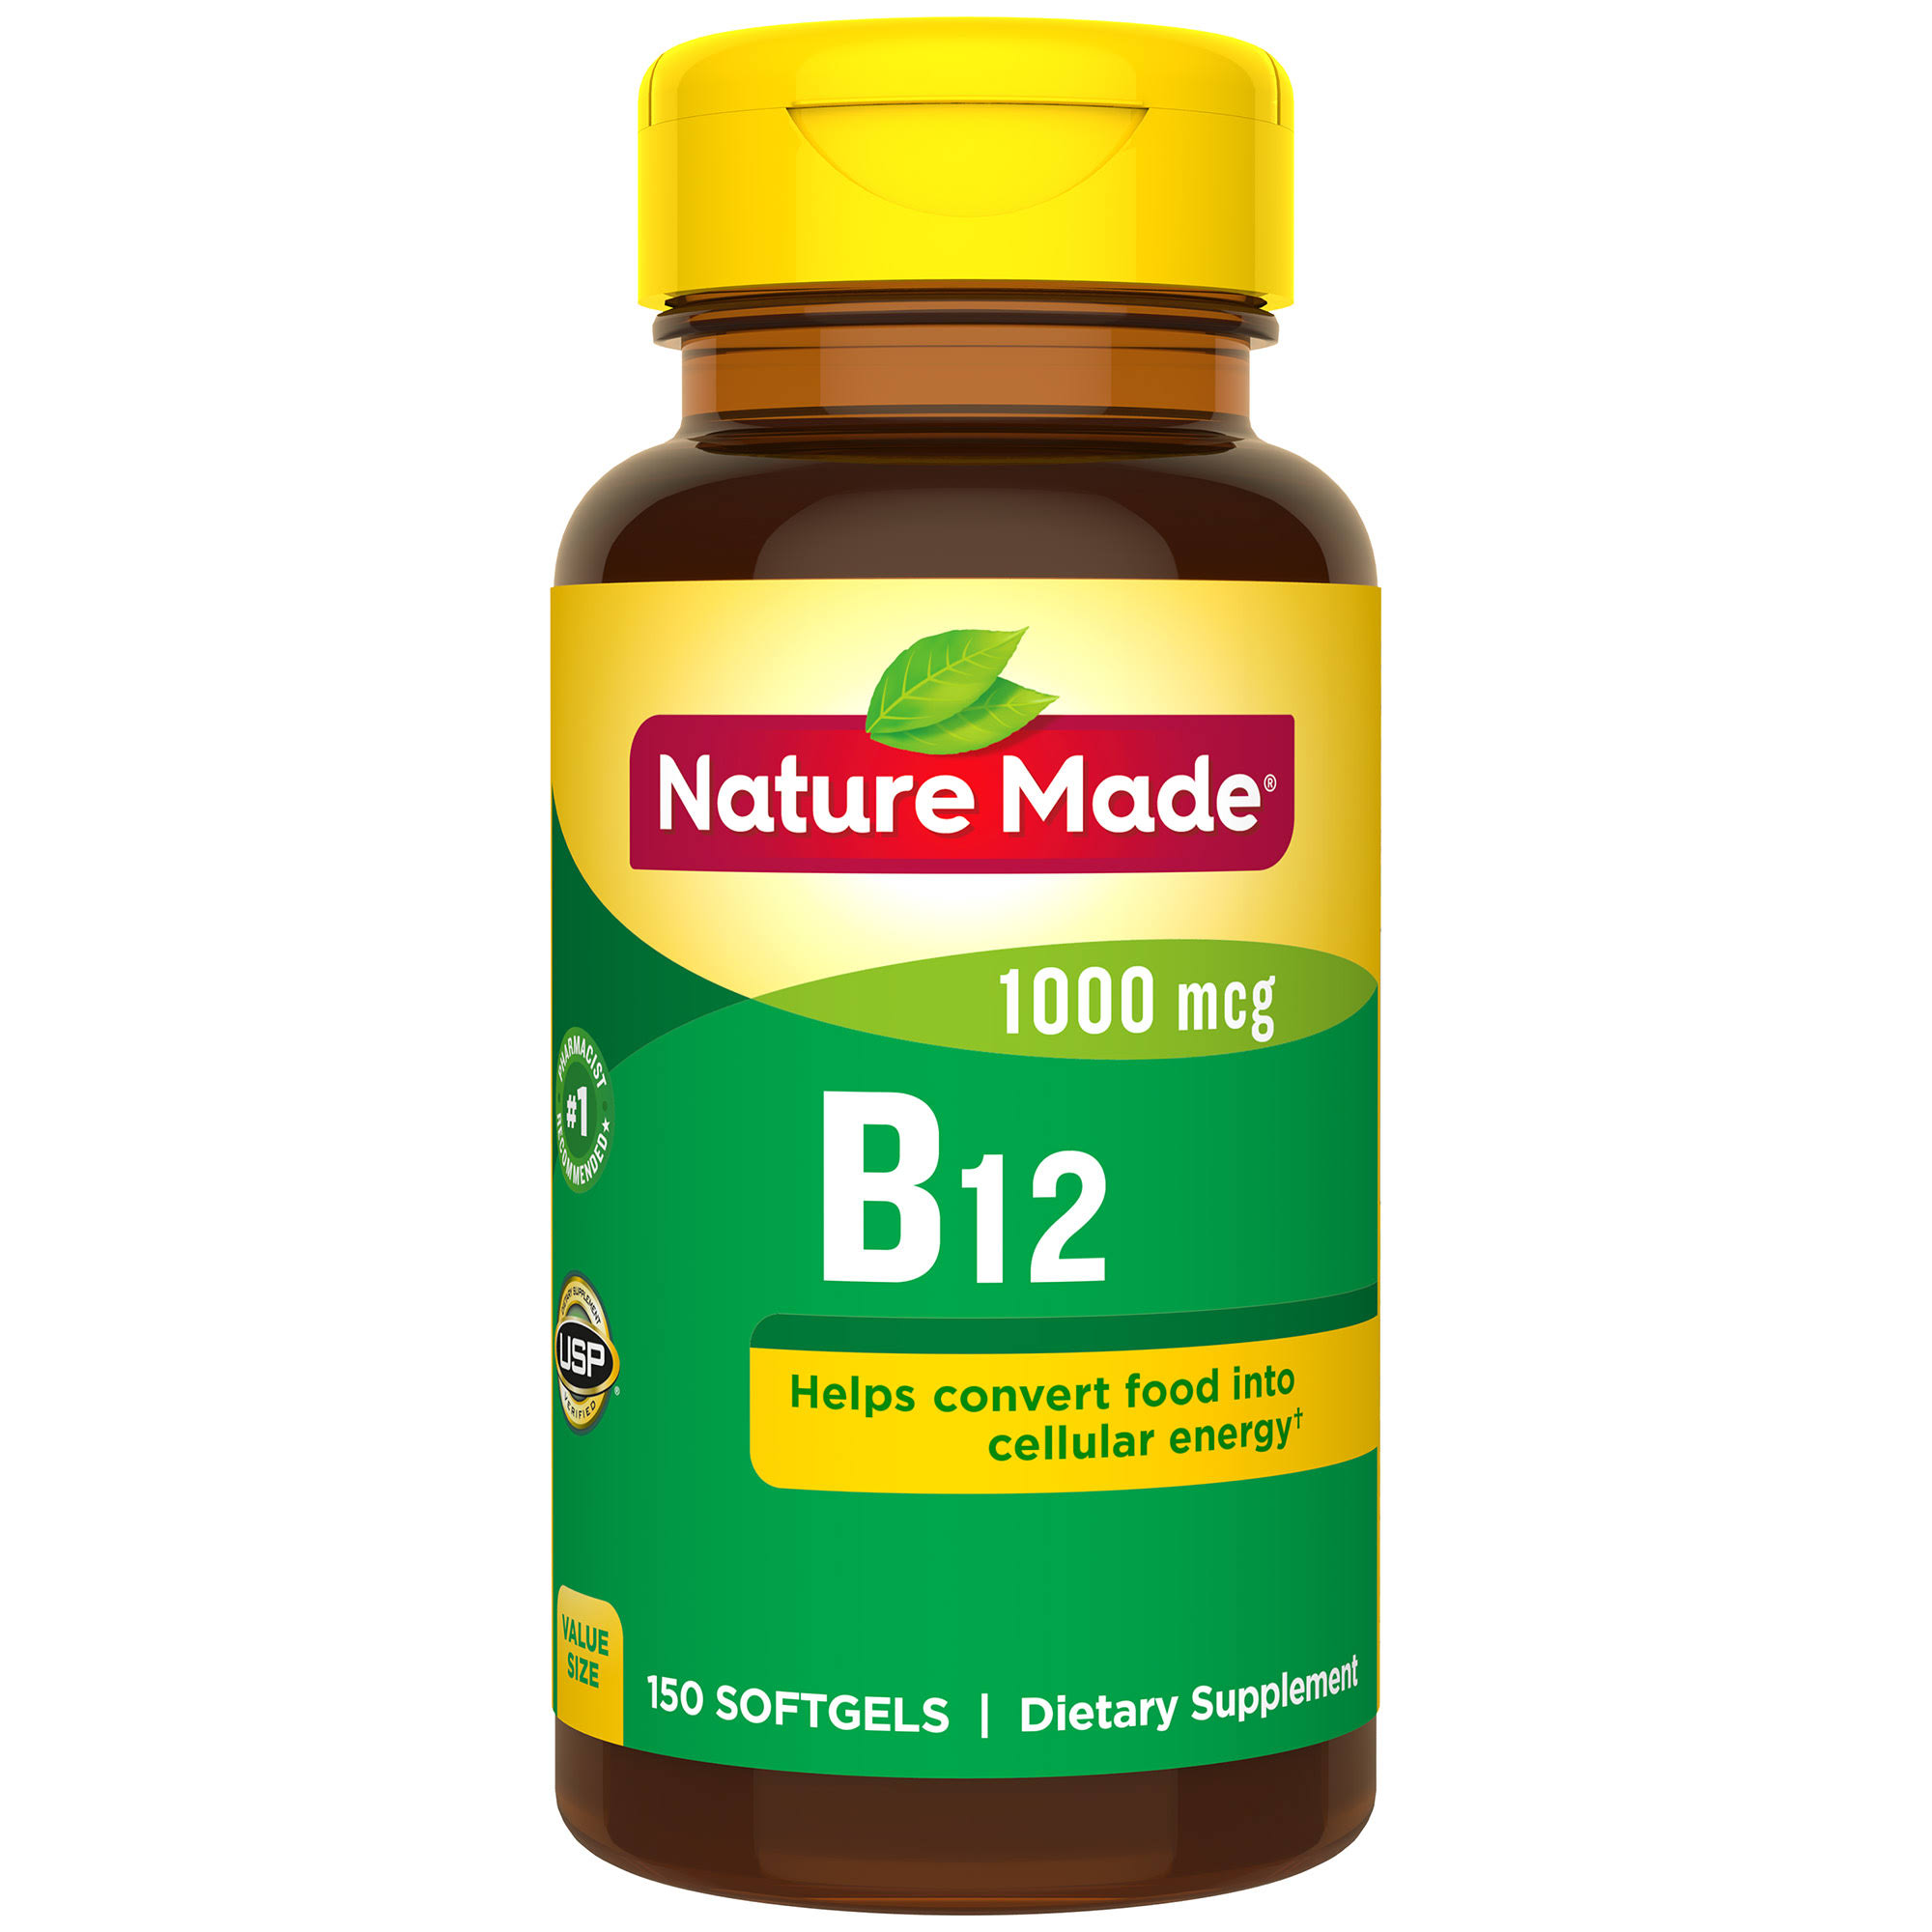 Nature Made Vitamin B-12 Supplement - 150 Softgel, 1000mcg